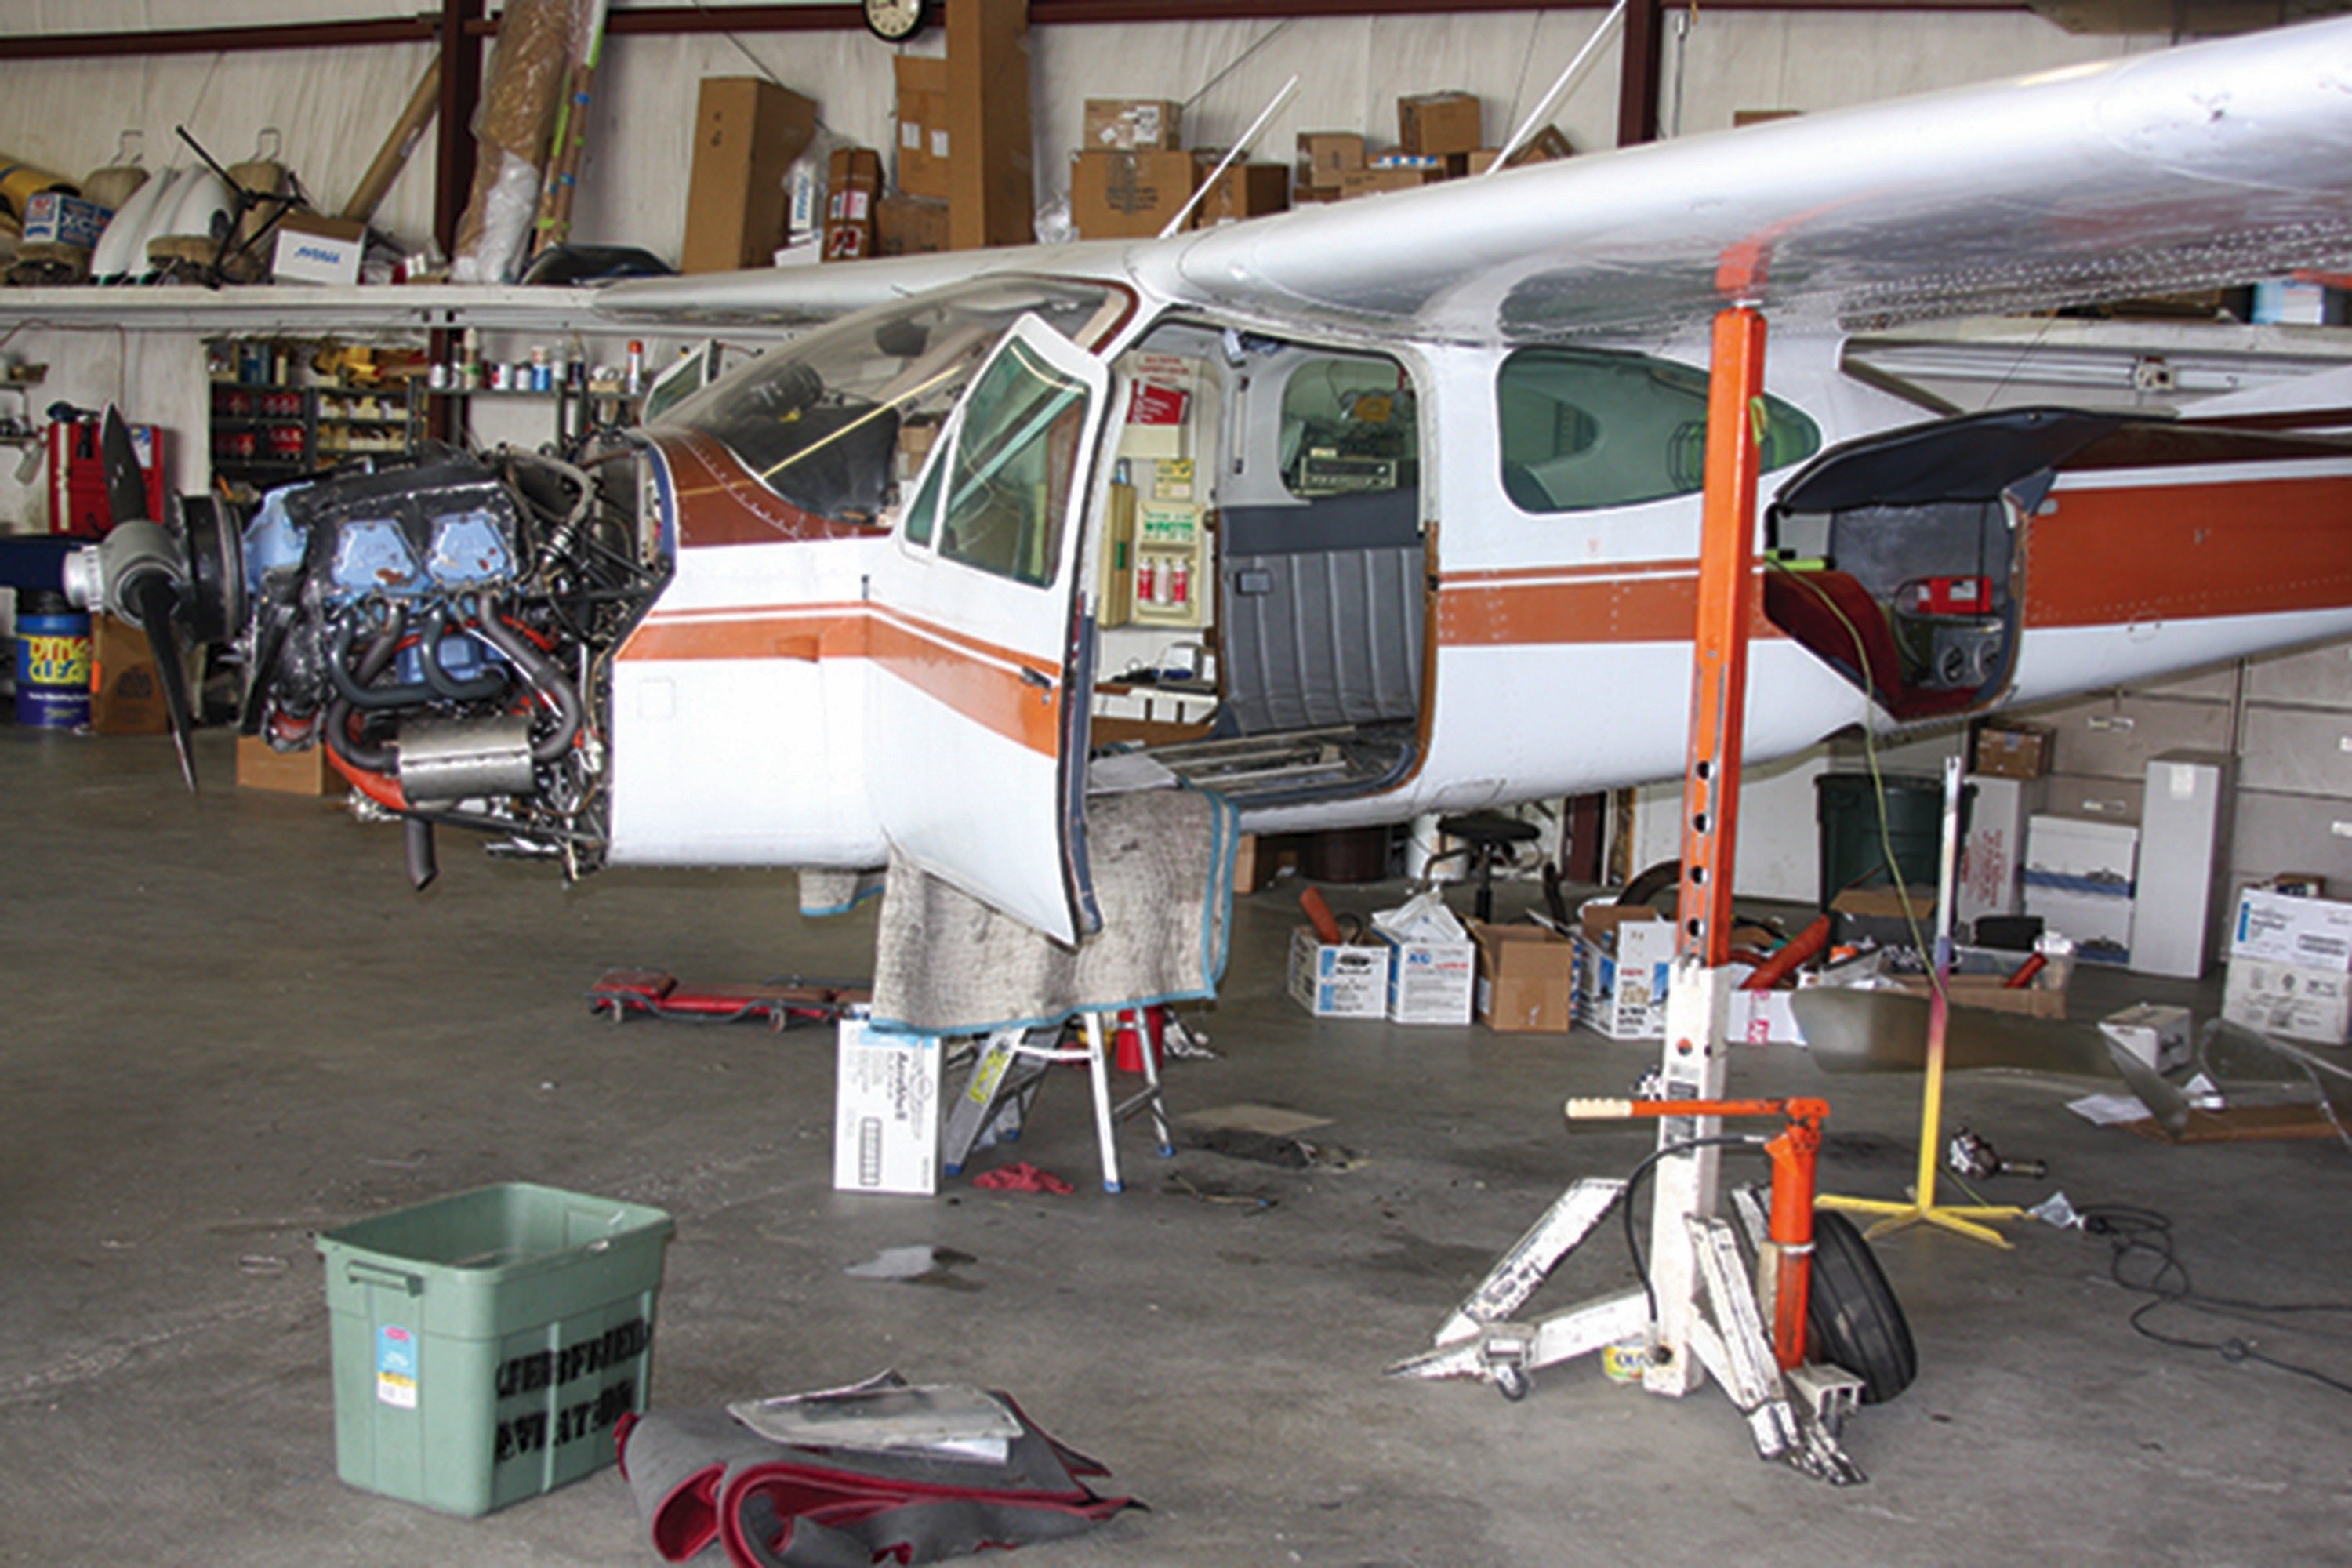 Landing gear must be inspected and rigging checked at 100 hour or annual intervals